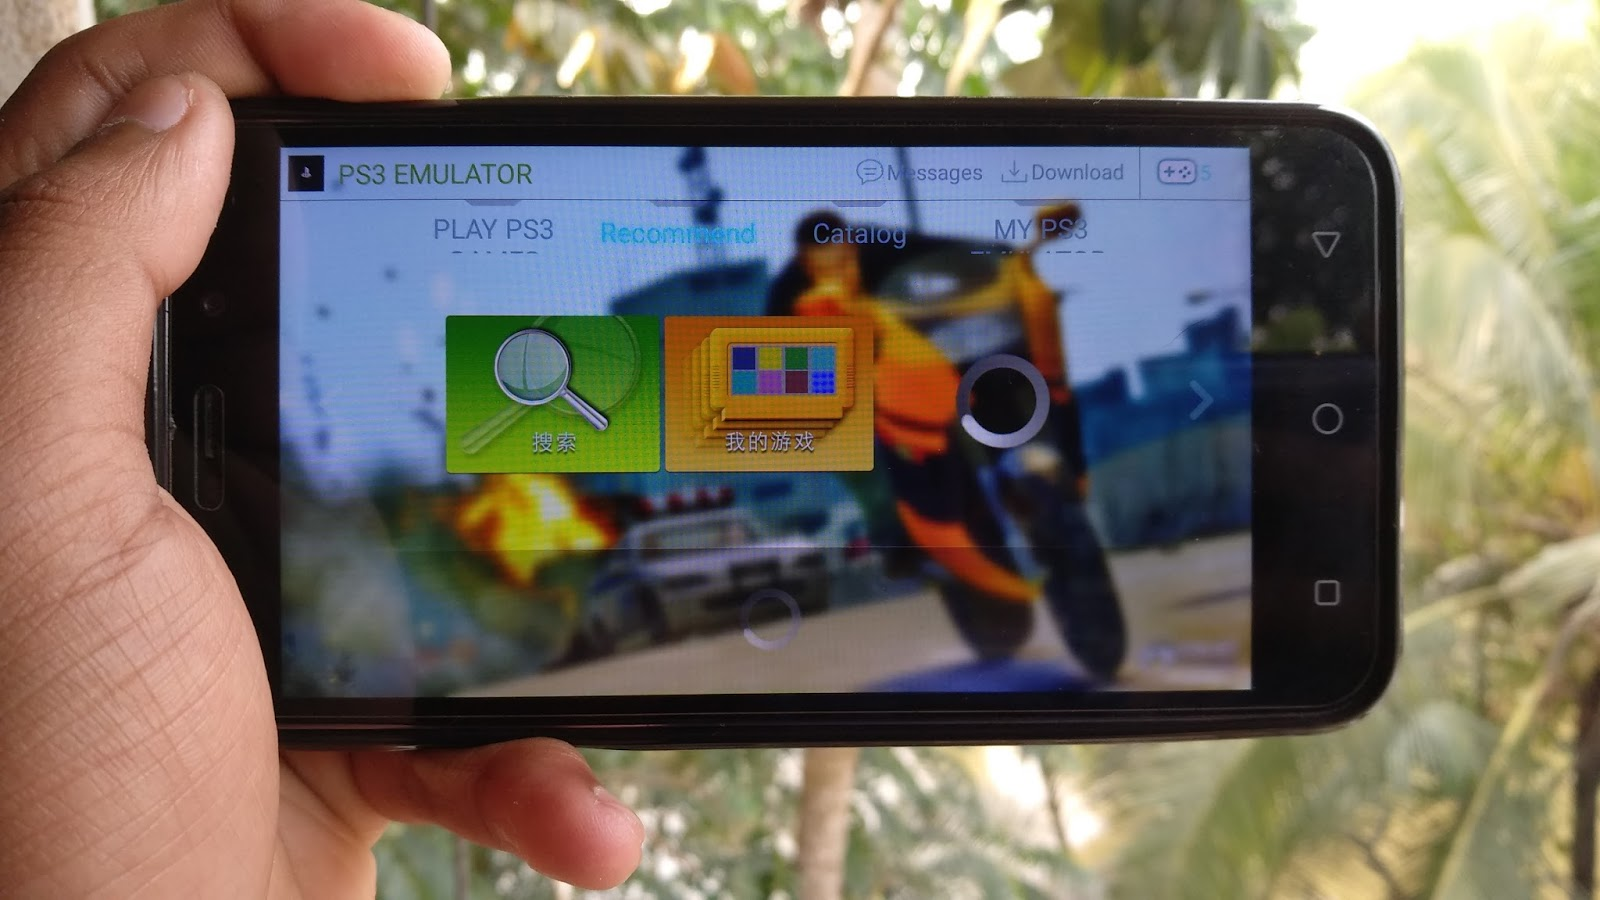 PS3 Emulator for Android New Version   Play GTA 4,GTA 5,Watch Dogs 2